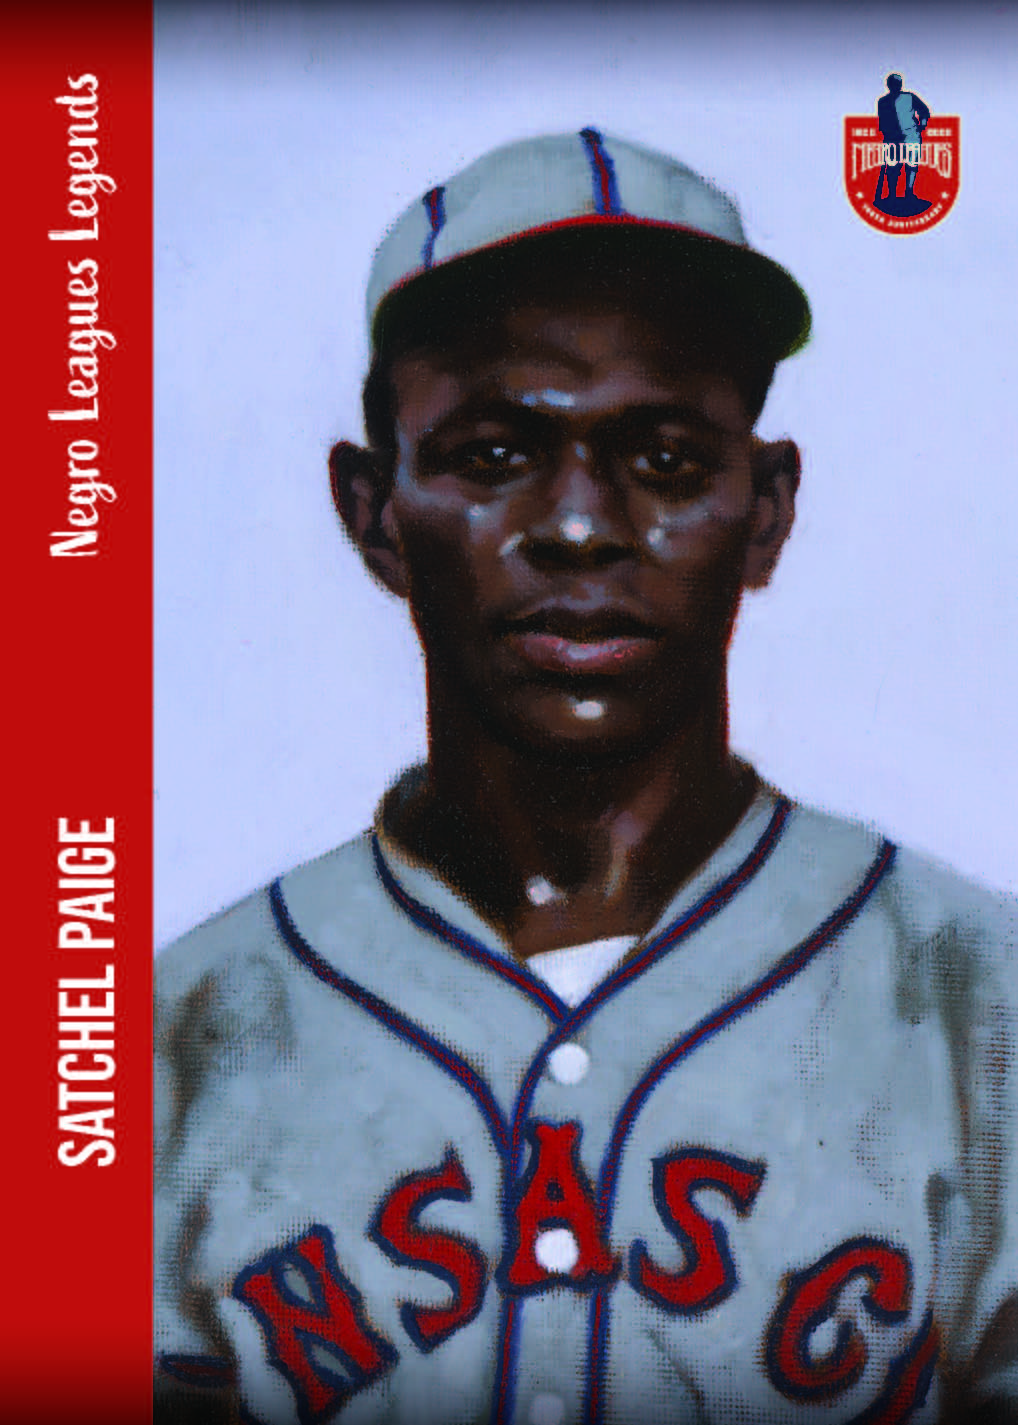 Cool Papa Bell Limited to 2,020 Buck Leonard Negro Leagues Centennial Team Limited Edition 34 Postcard Set Rube Foster and More Featuring Baseball Legends Including Satchel Paige Josh Gibson